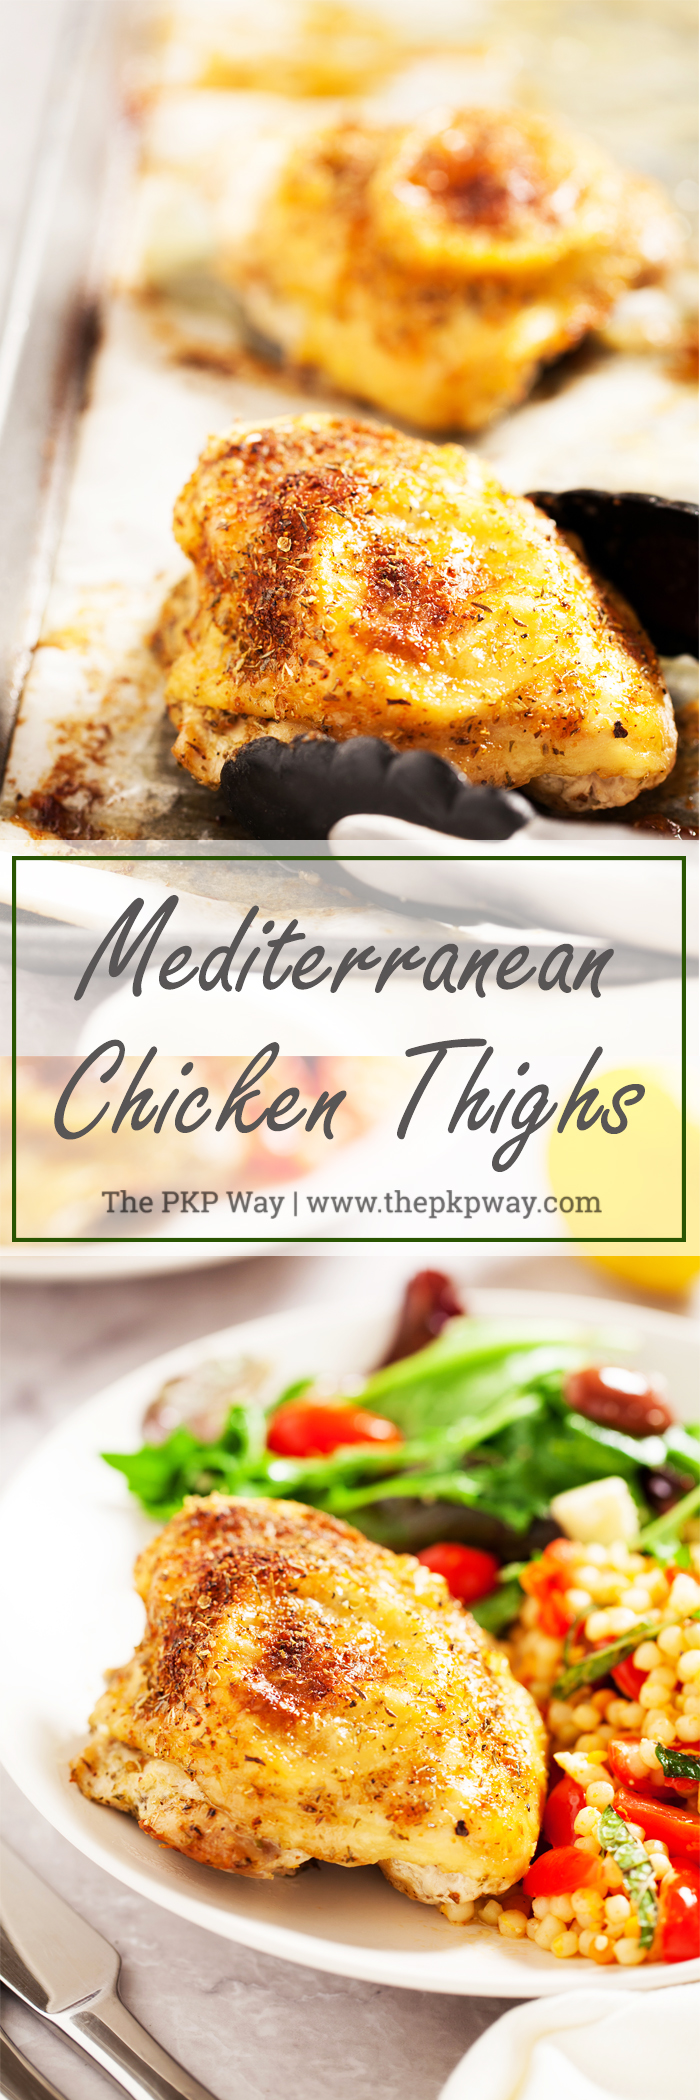 These flavorful Mediterranean Chicken Thighs make an easy weeknight meal and can be prepared in advance!